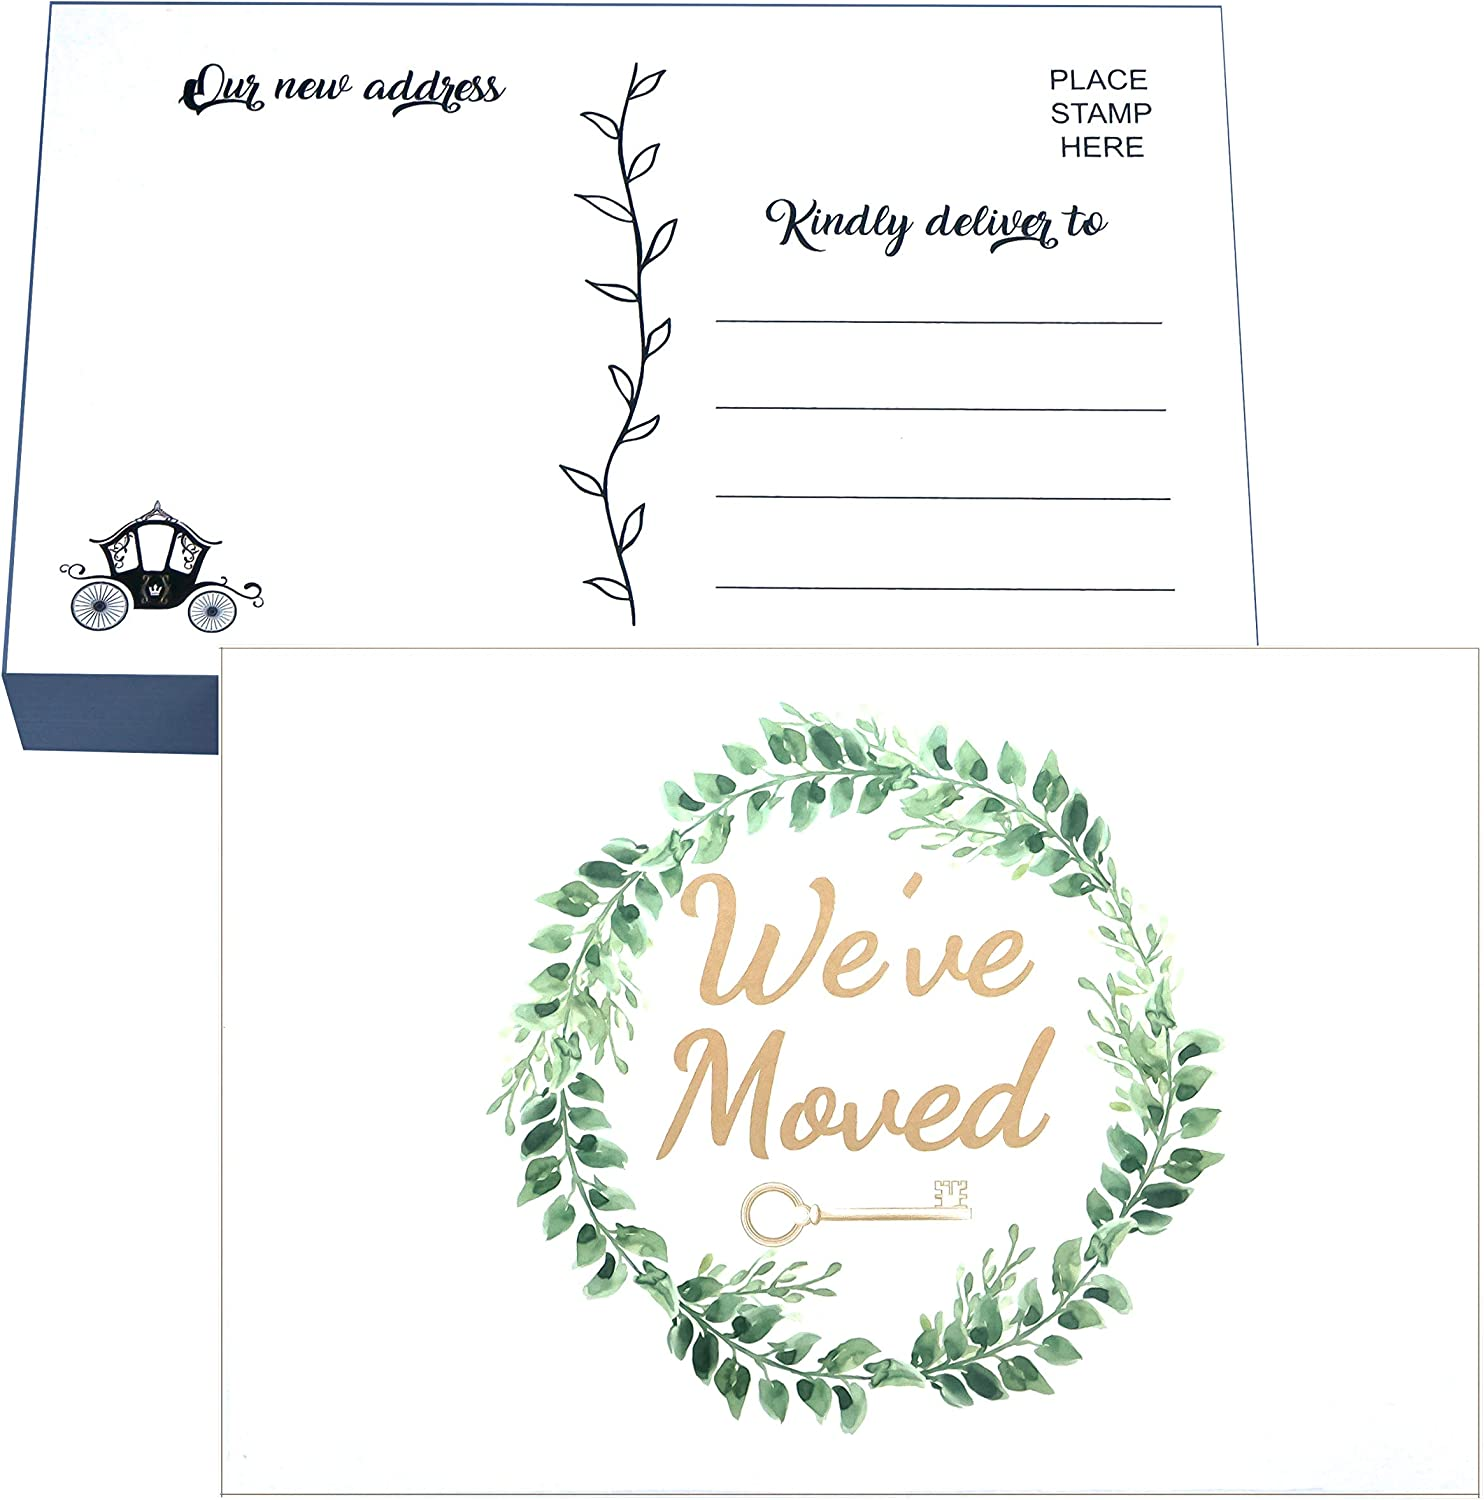 RXBC2011 50 We've Moved Postcards Green Leaf Moving Announcement Cards Just Moved Change of Address New Home Postcards